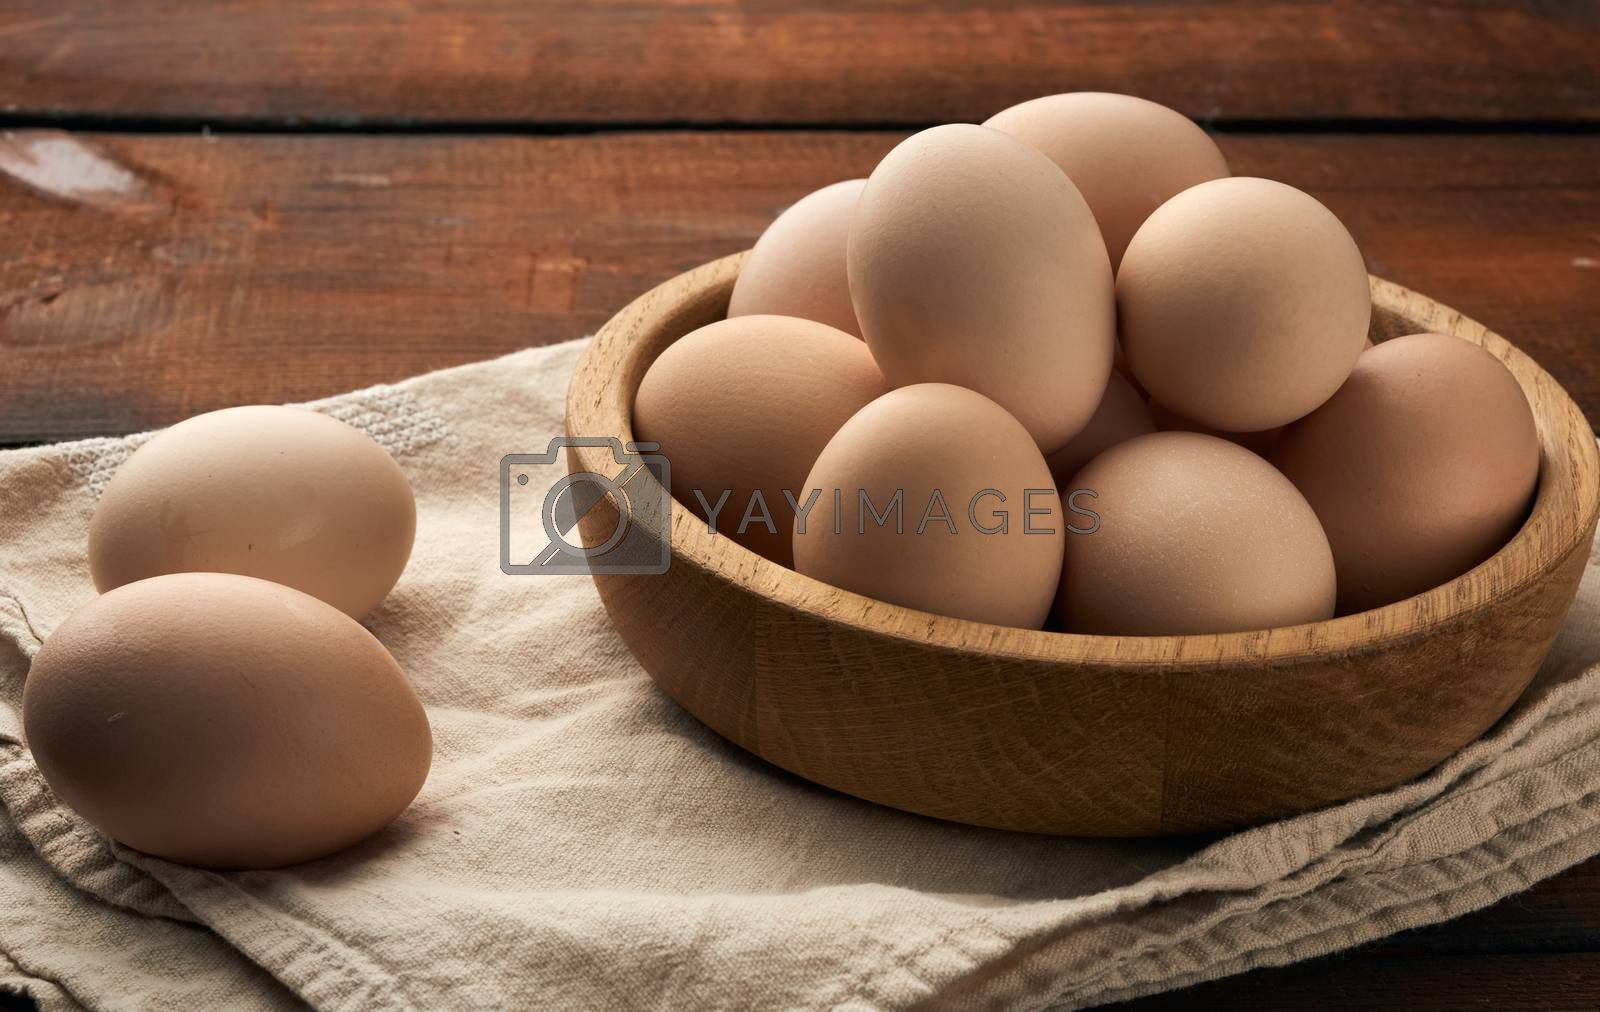 raw brown chicken eggs in a wooden plate on the table by ndanko